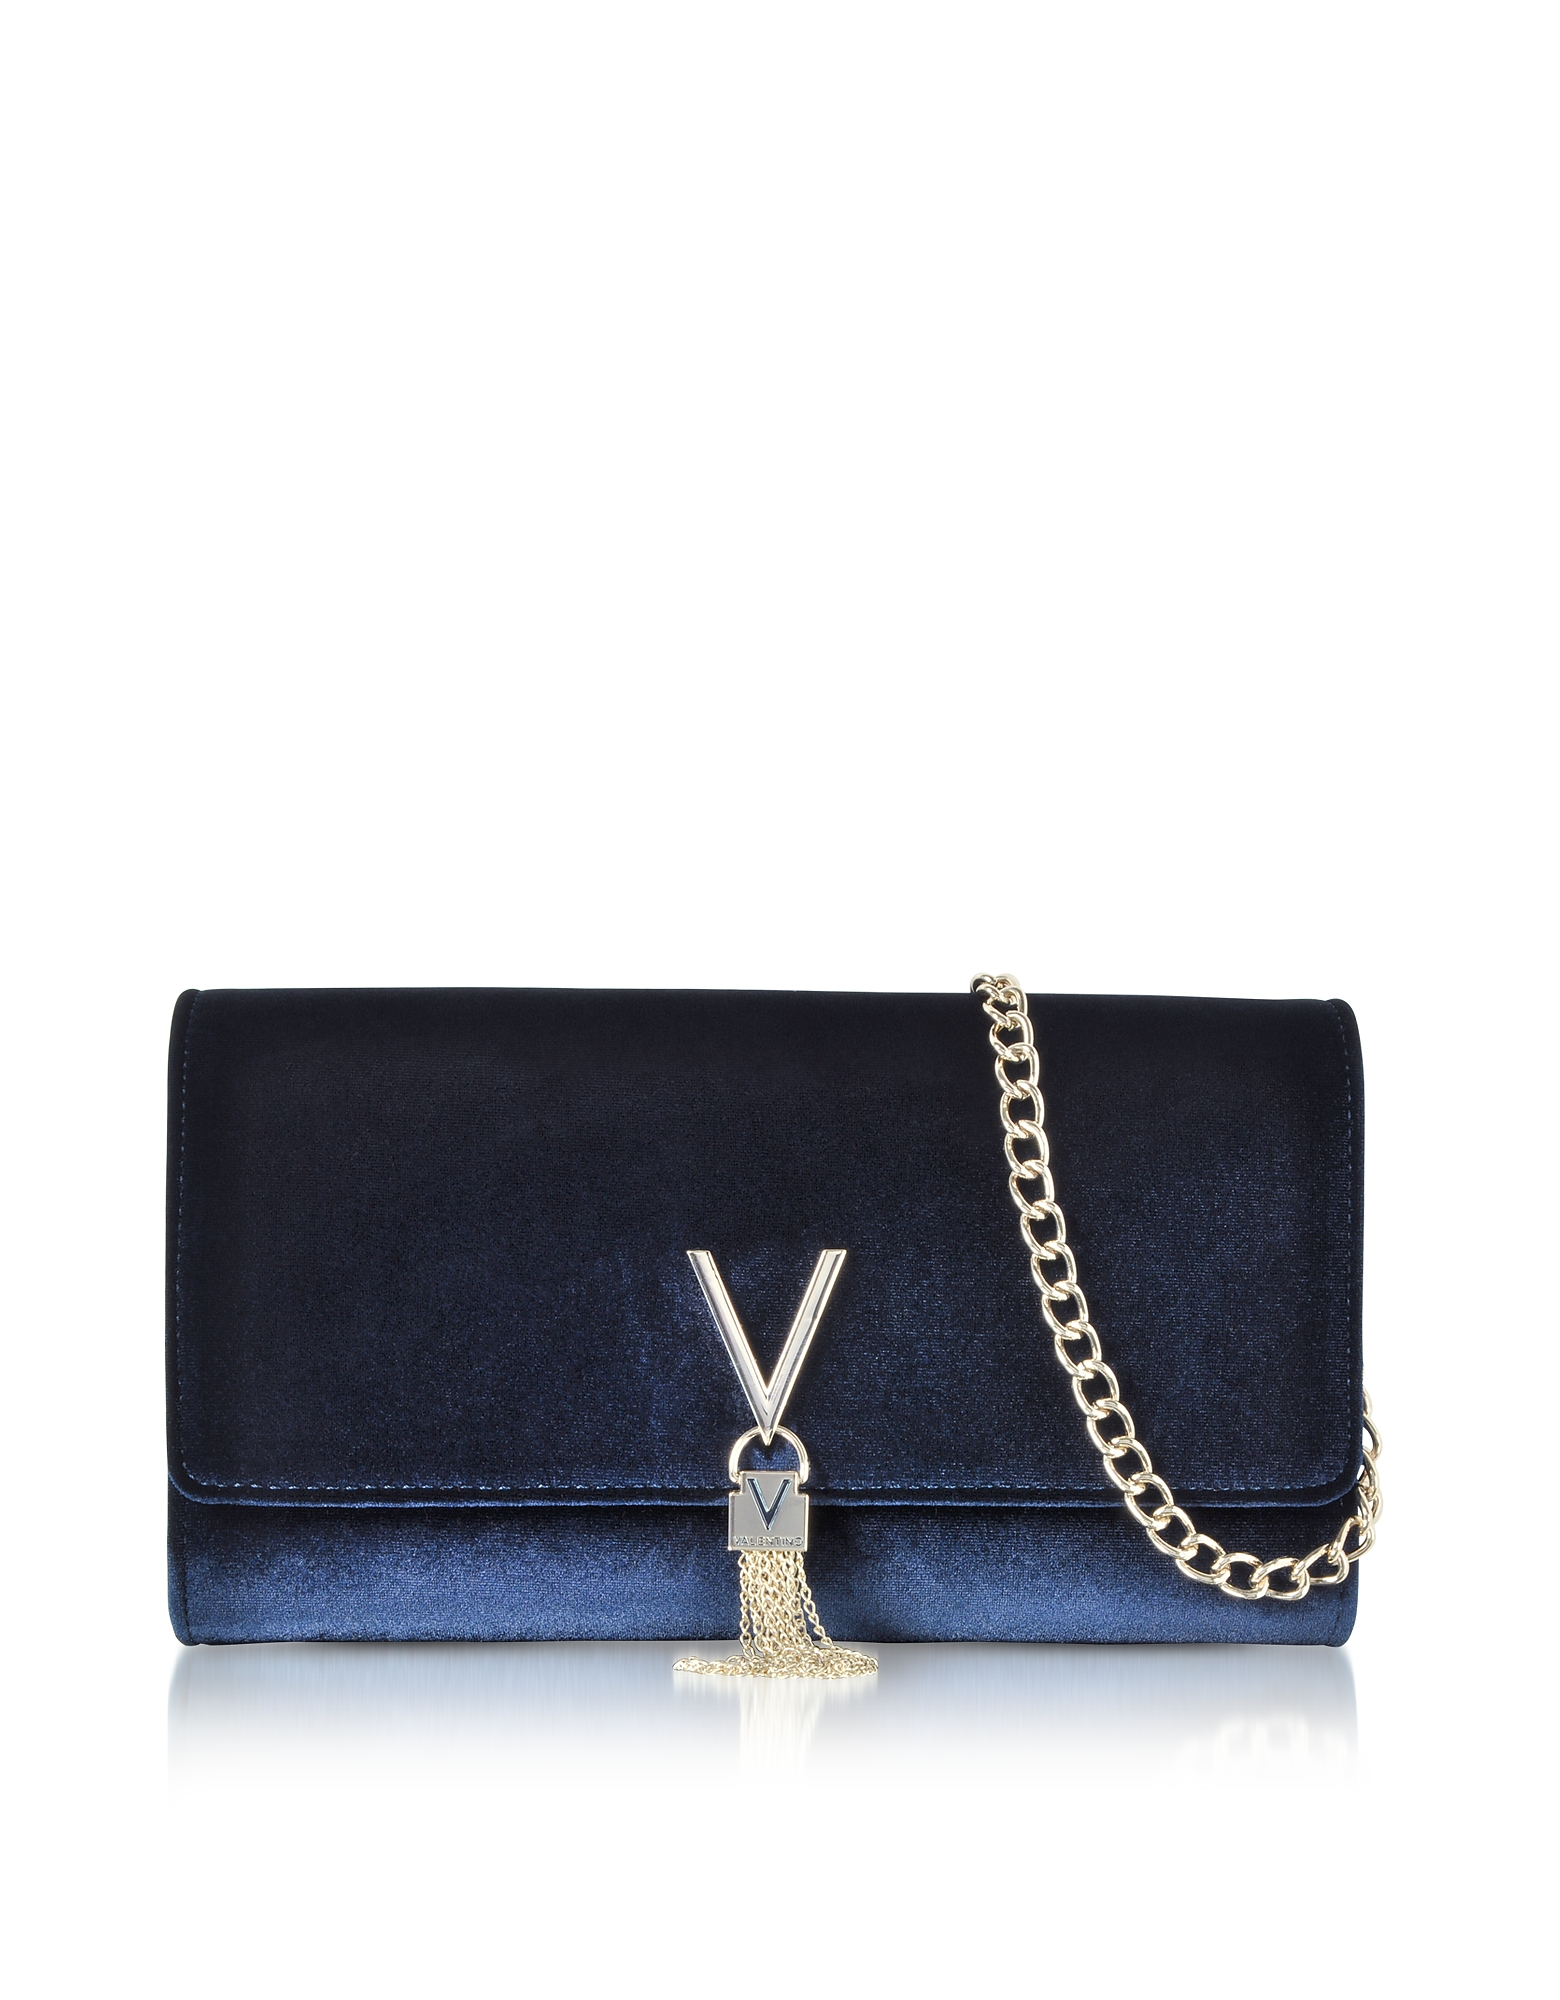 VALENTINO BY MARIO VALENTINO Velvet Marilyn Shoulder Bag